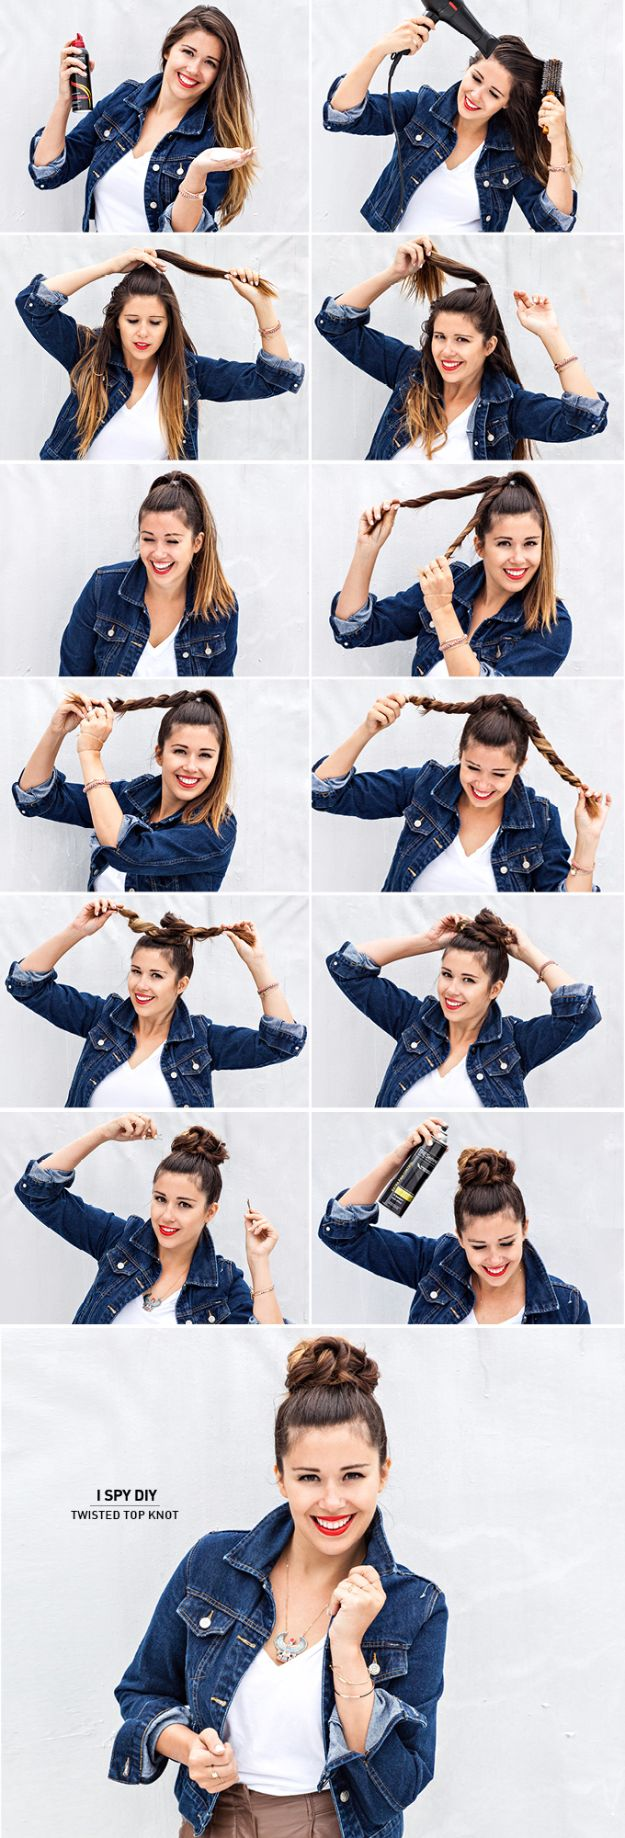 Cool Hair Tutorials for Summer - Twisted Top Knot - Easy Hairstyles and Creative Looks for Hair - Beachy Waves, Hair Styles for Short Hair, Medium Length and Long Hair - Ponytails, Updo Ideas and Quick Last Minute Hairstyle for Teens, Teenagers and Women http://diyprojectsforteens.com/cool-hairstyles-summer